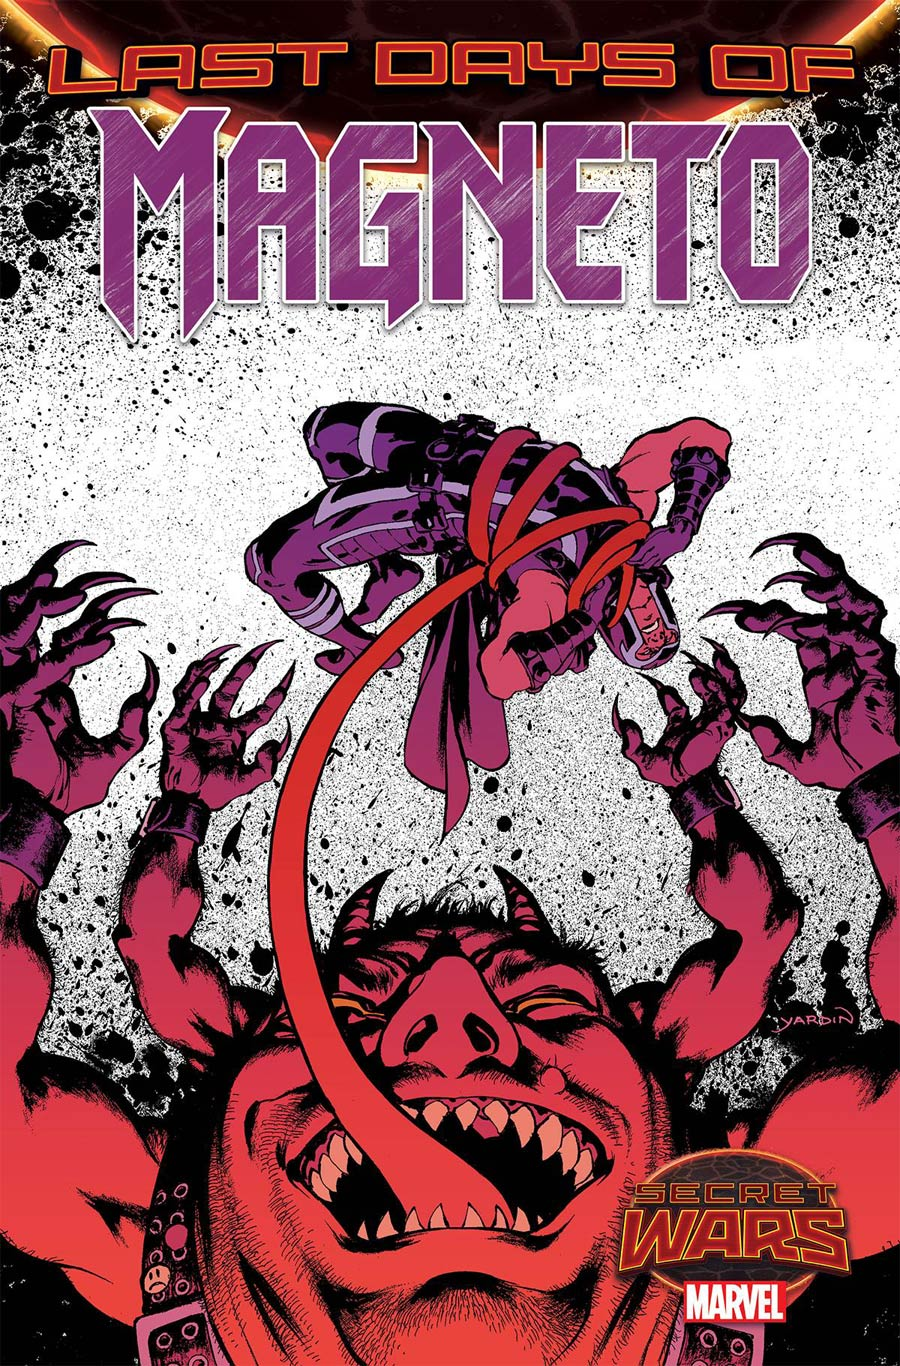 Magneto Vol 3 #19 Cover A Regular David Yardin Cover (Secret Wars Last Days Tie-In)